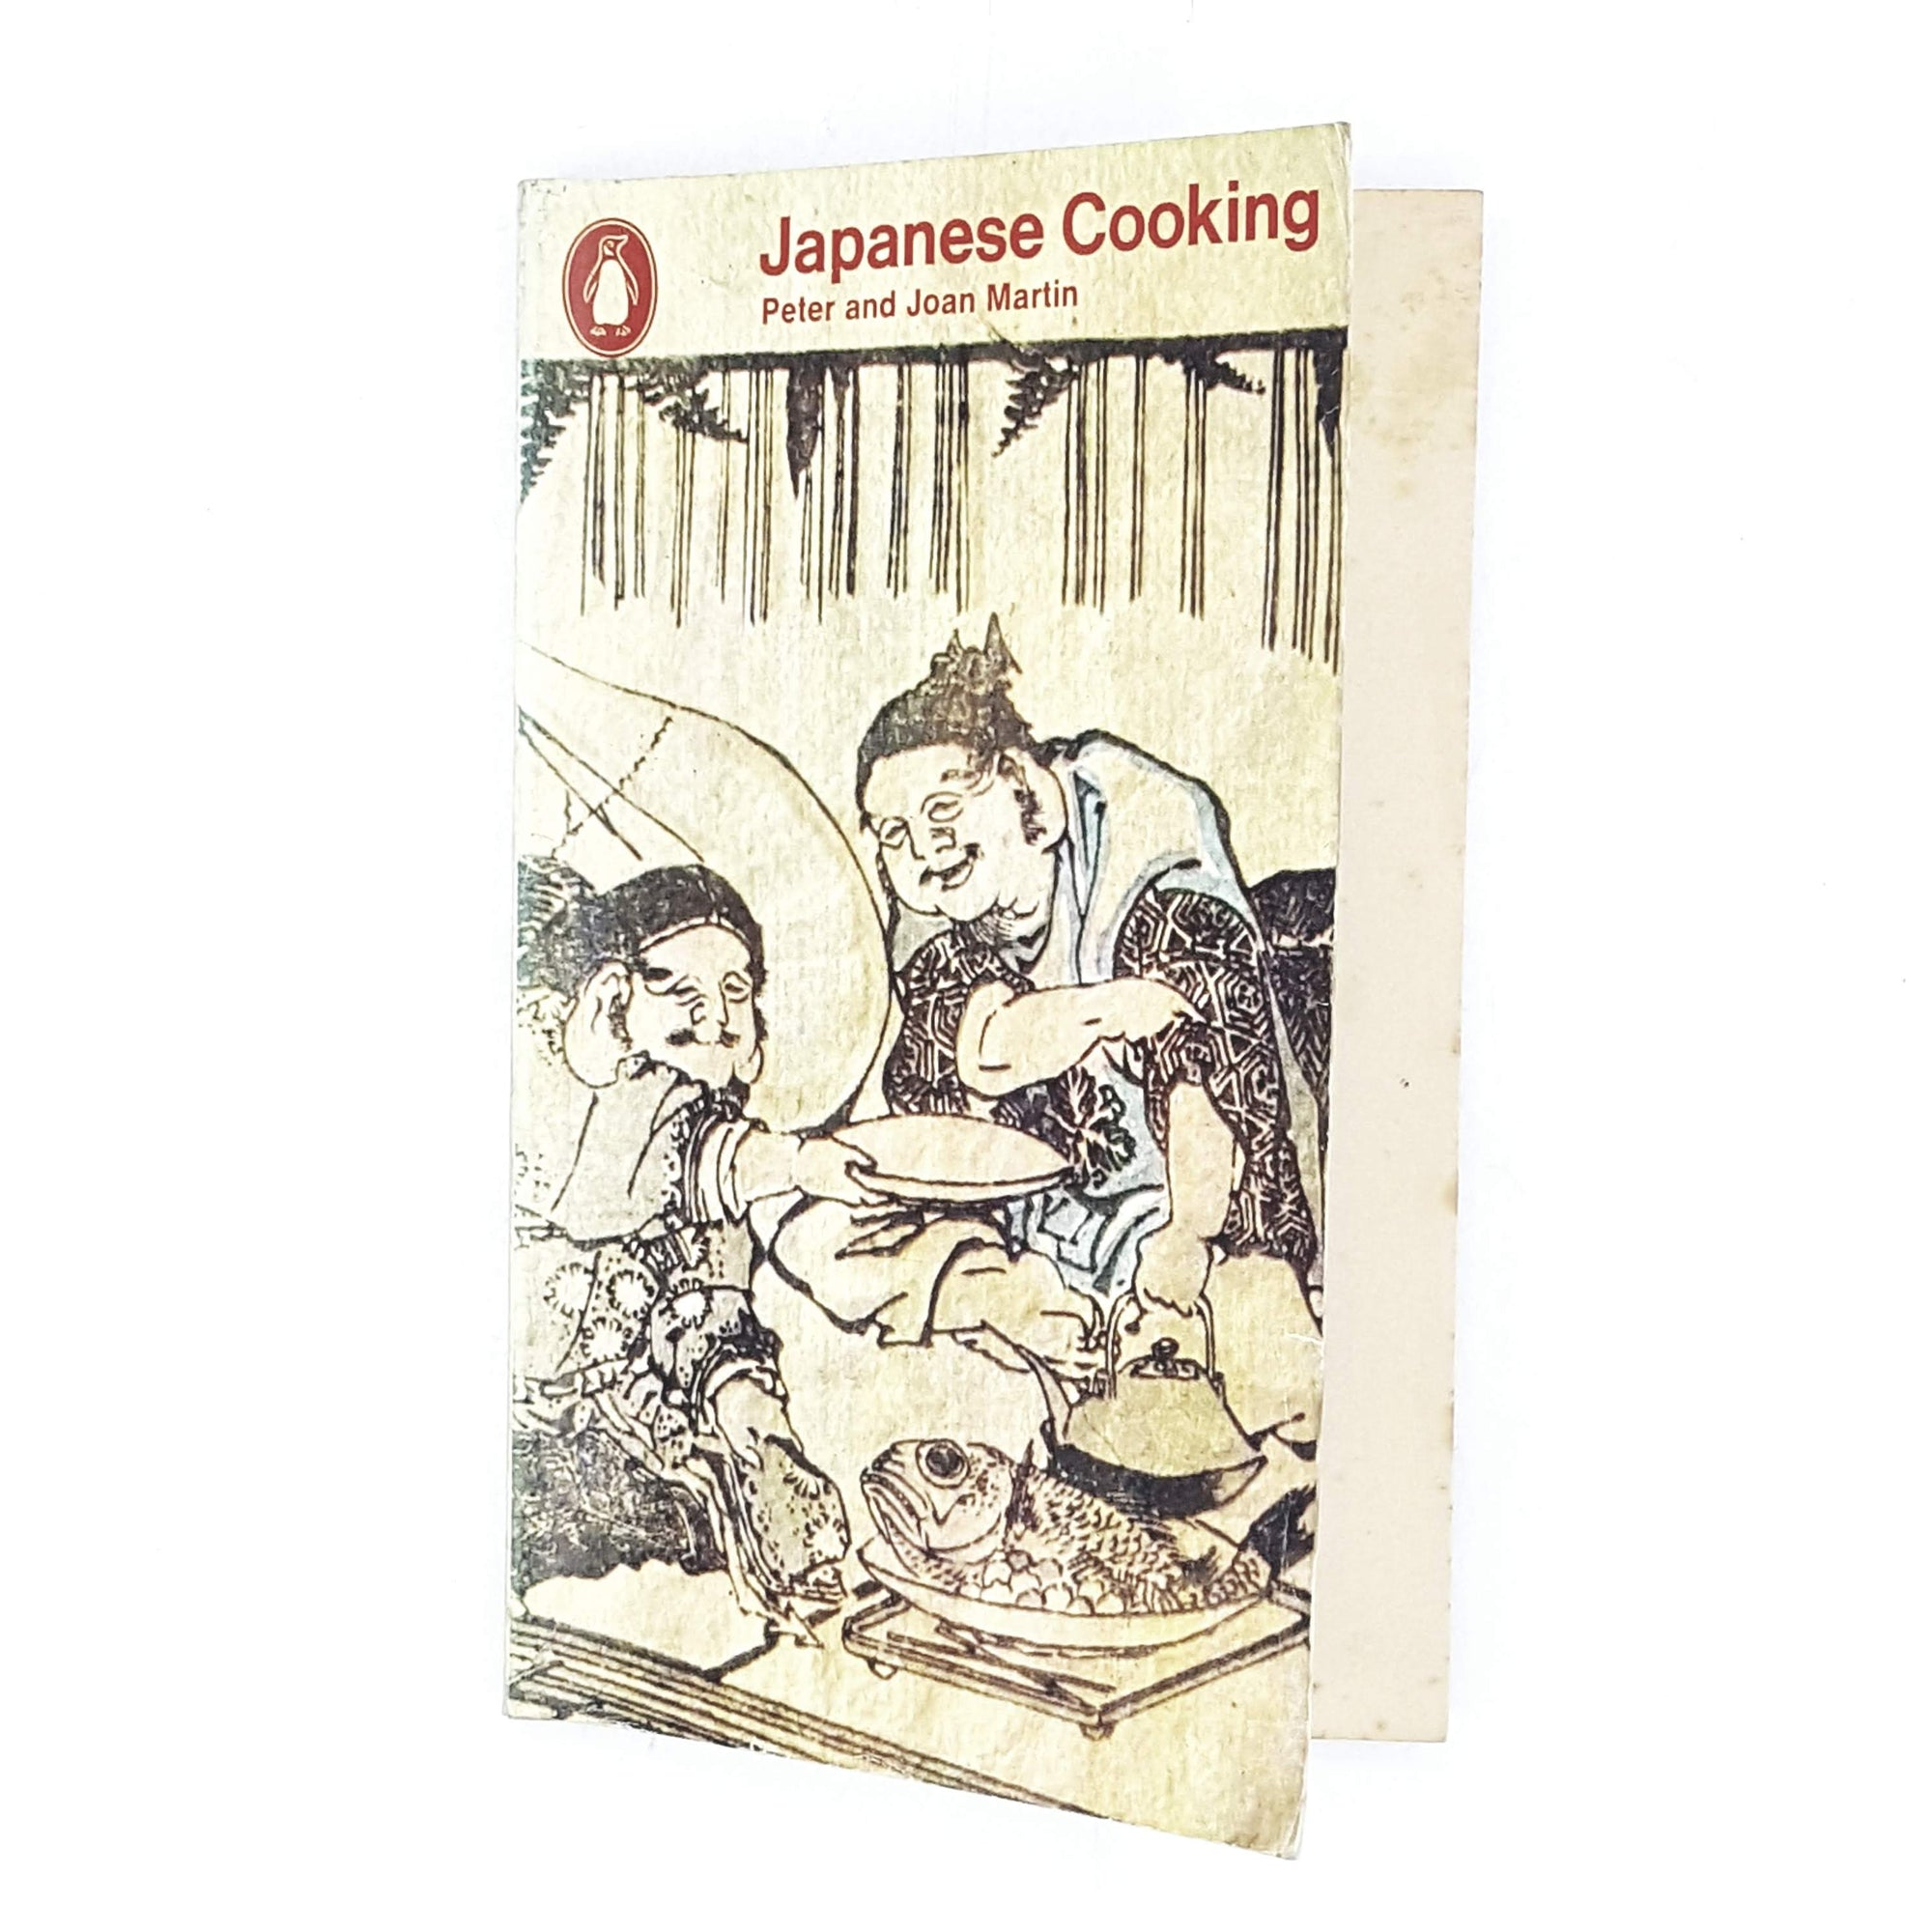 Japanese Cooking by Peter and Joan Martin 1974